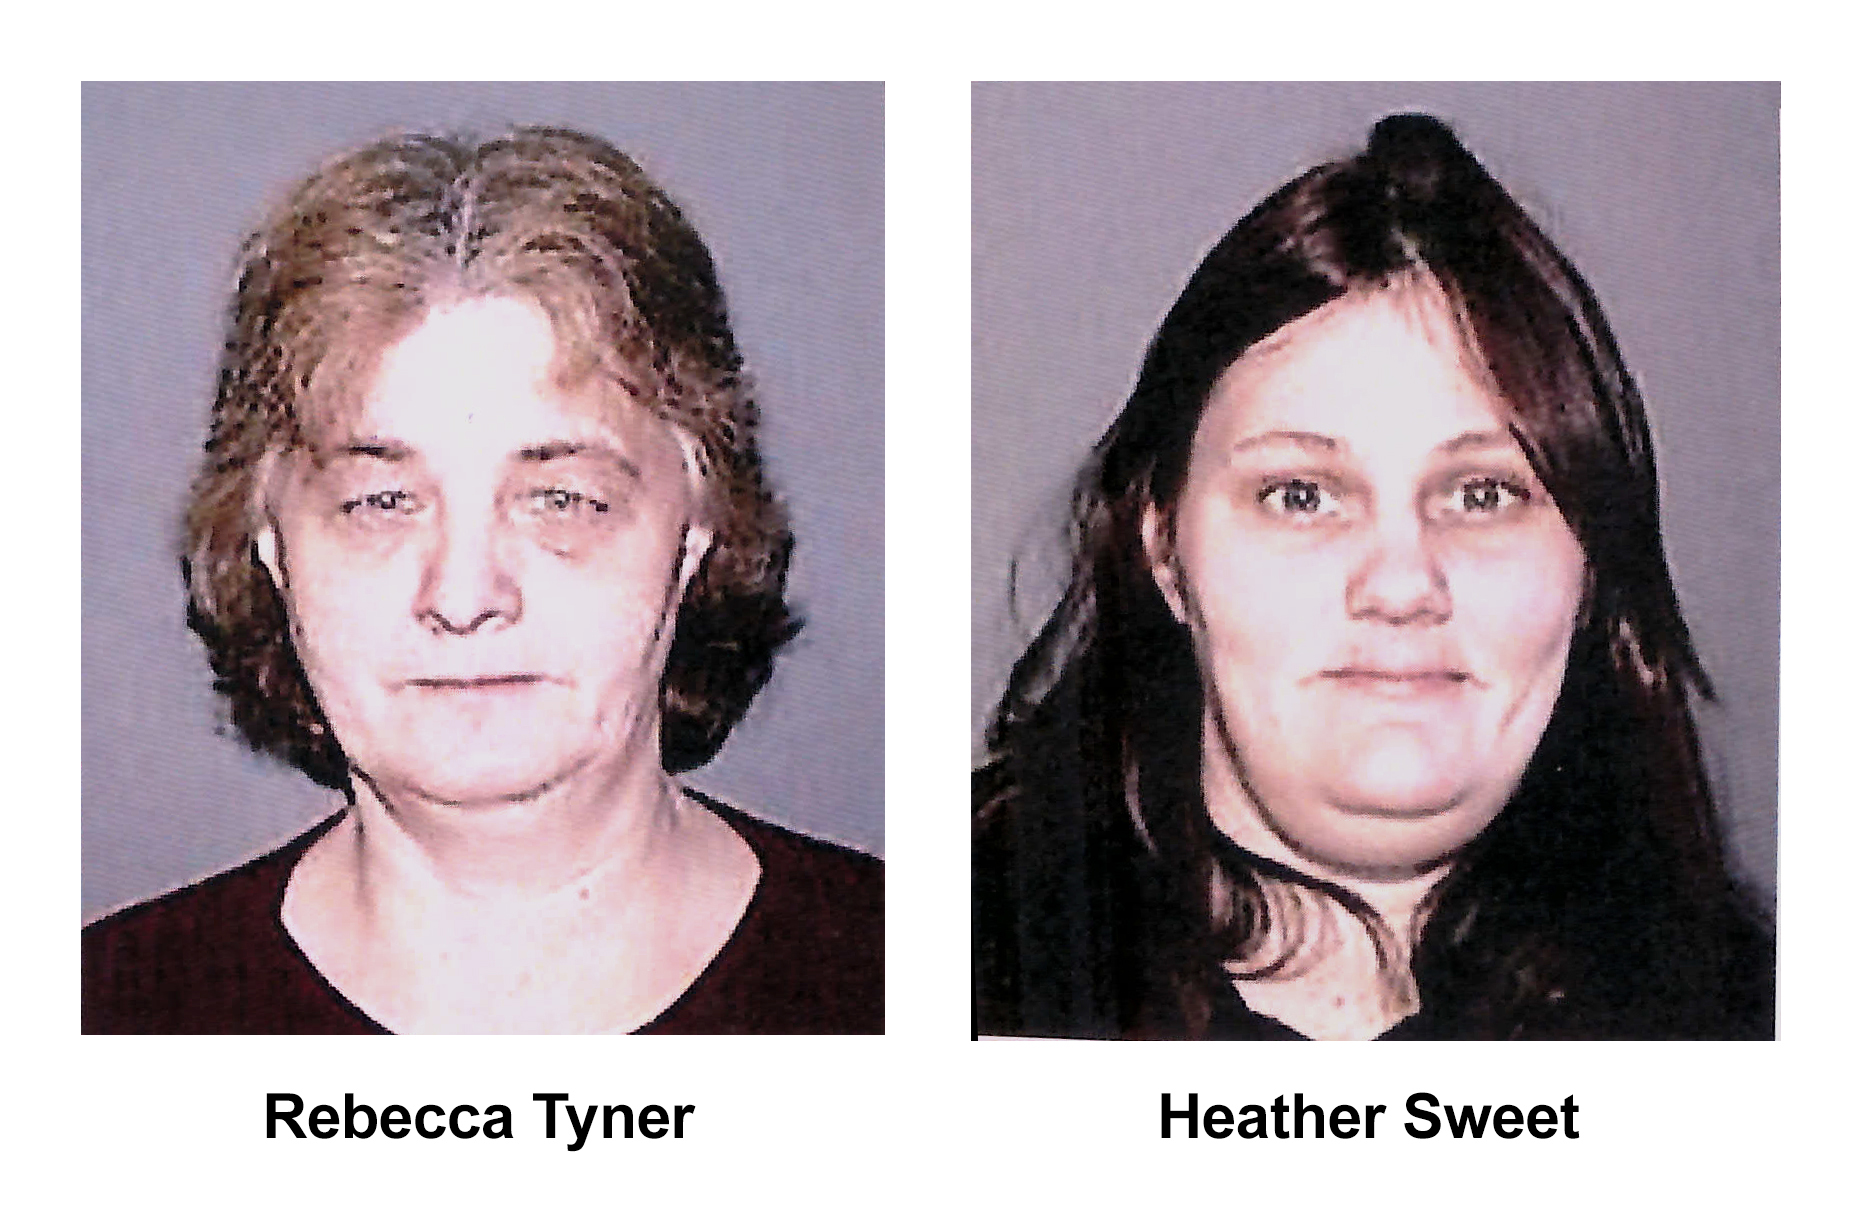 Photos of Rebecca Tyner and Heather Sweet